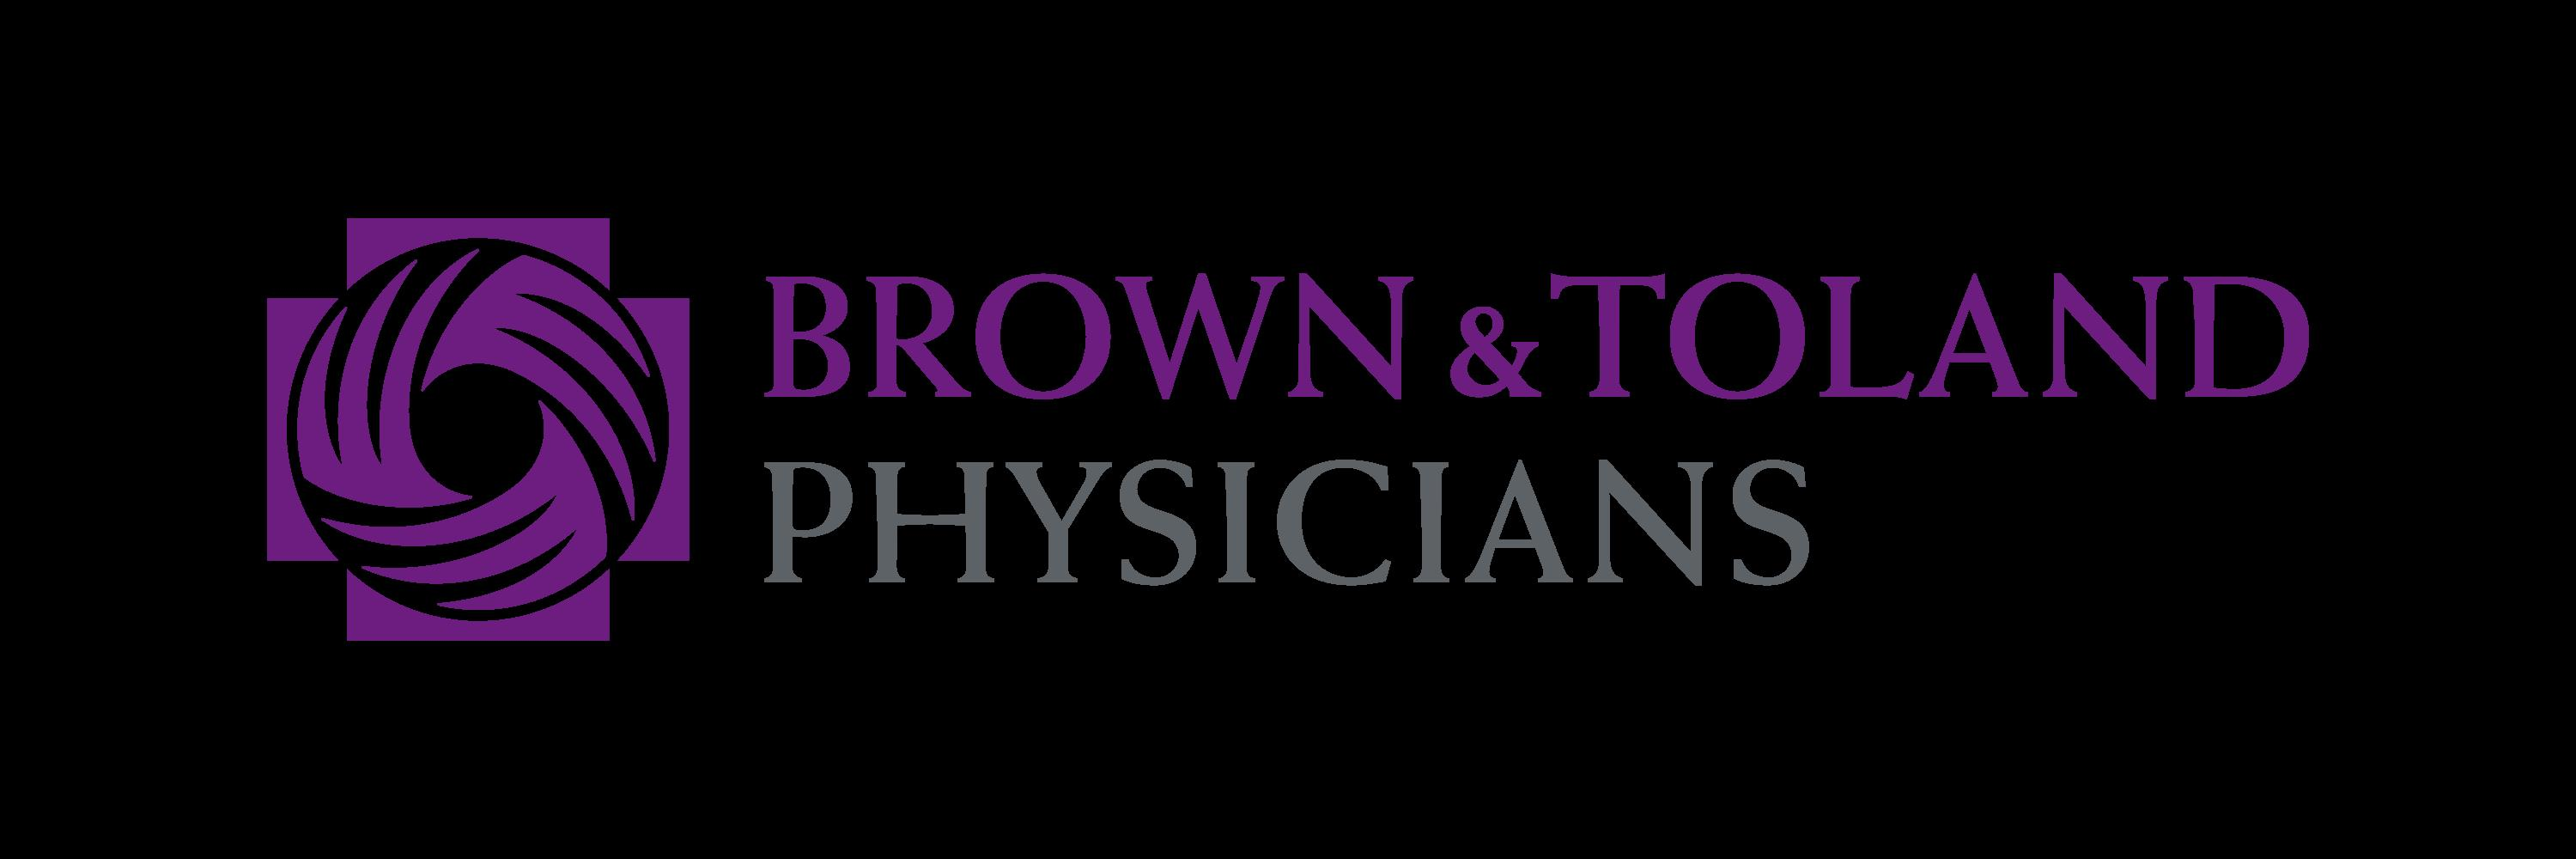 Brown & Toland Physicians